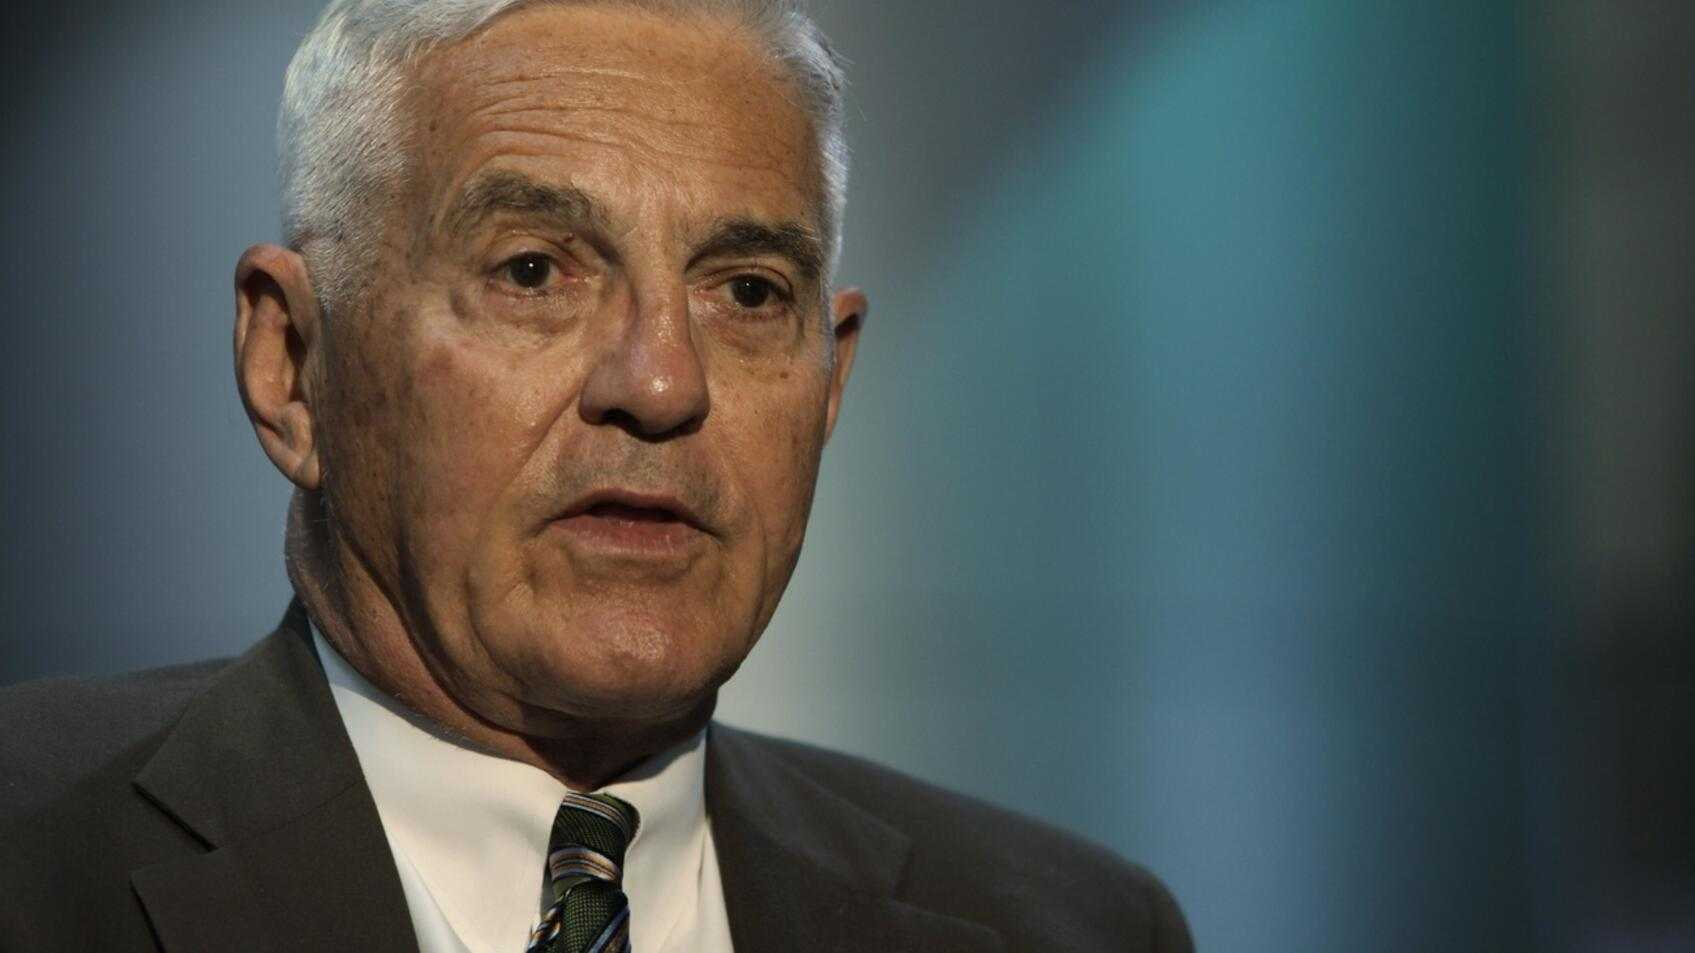 General Motors Vice Chairman Bob Lutz is interviewed by the Associated Press in Detroit, Wednesday, May 27, 2009. (AP Photo/Paul Sancya)